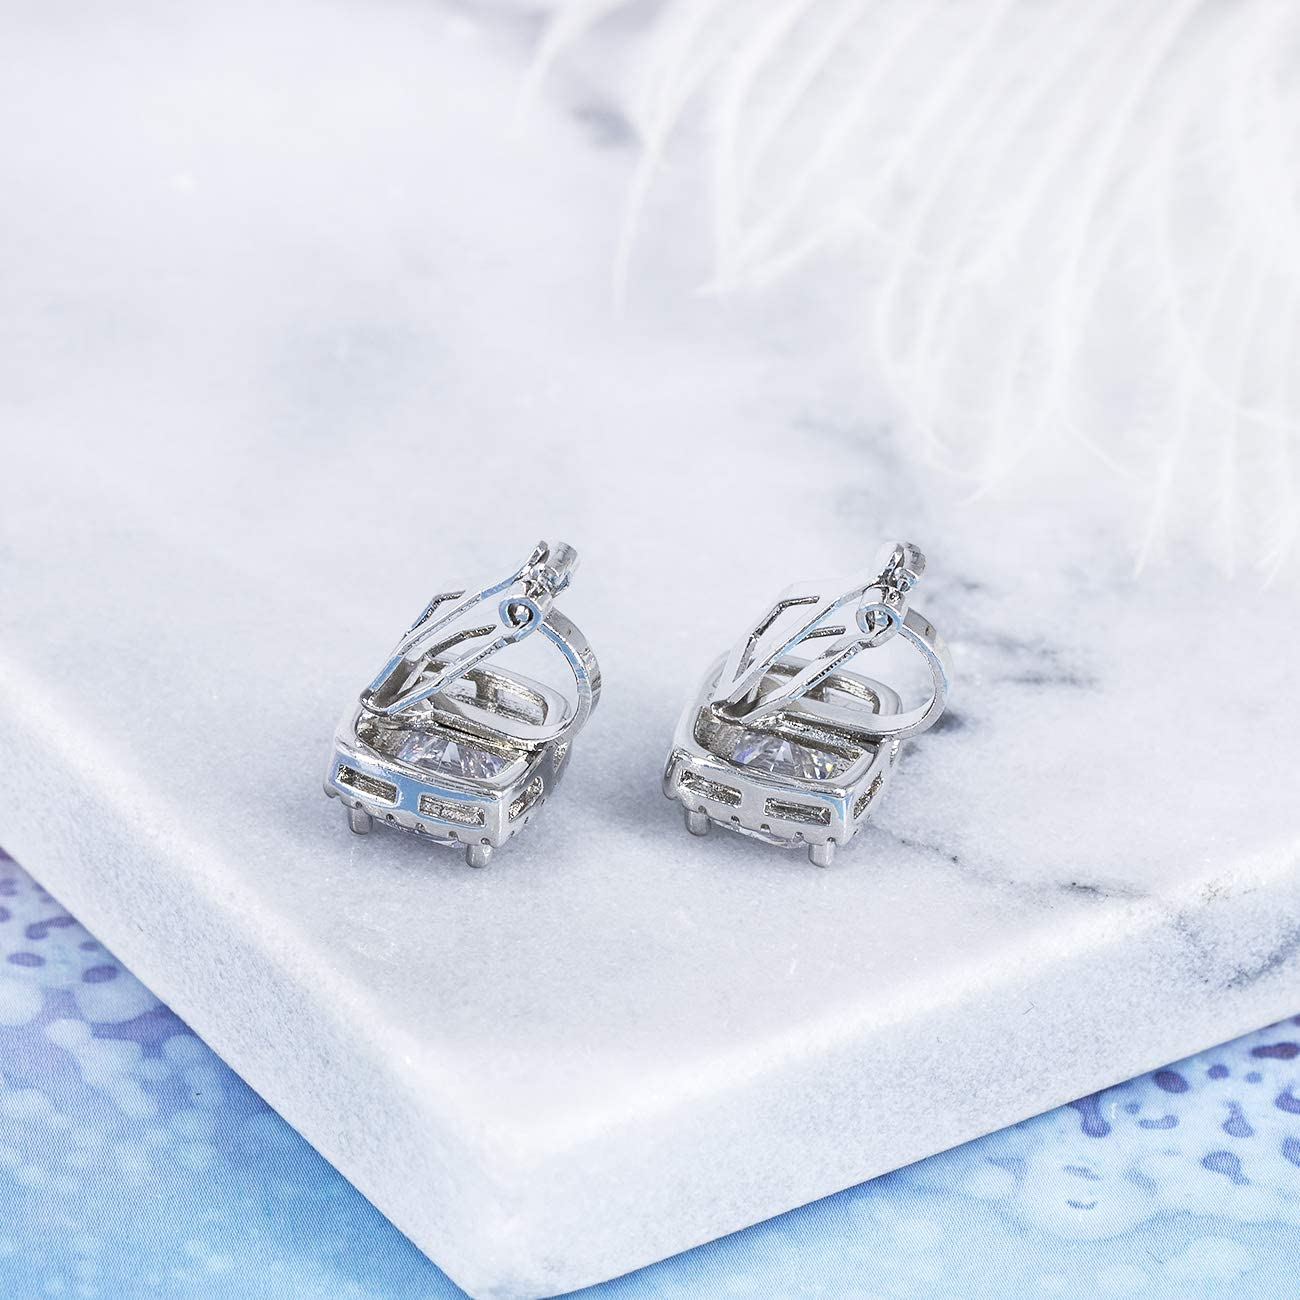 YOQUCOL 7MM Clip On Stud Earrings Square Cubic Zirconia Crystal Not Pierced Studs Earrings For Women Girls